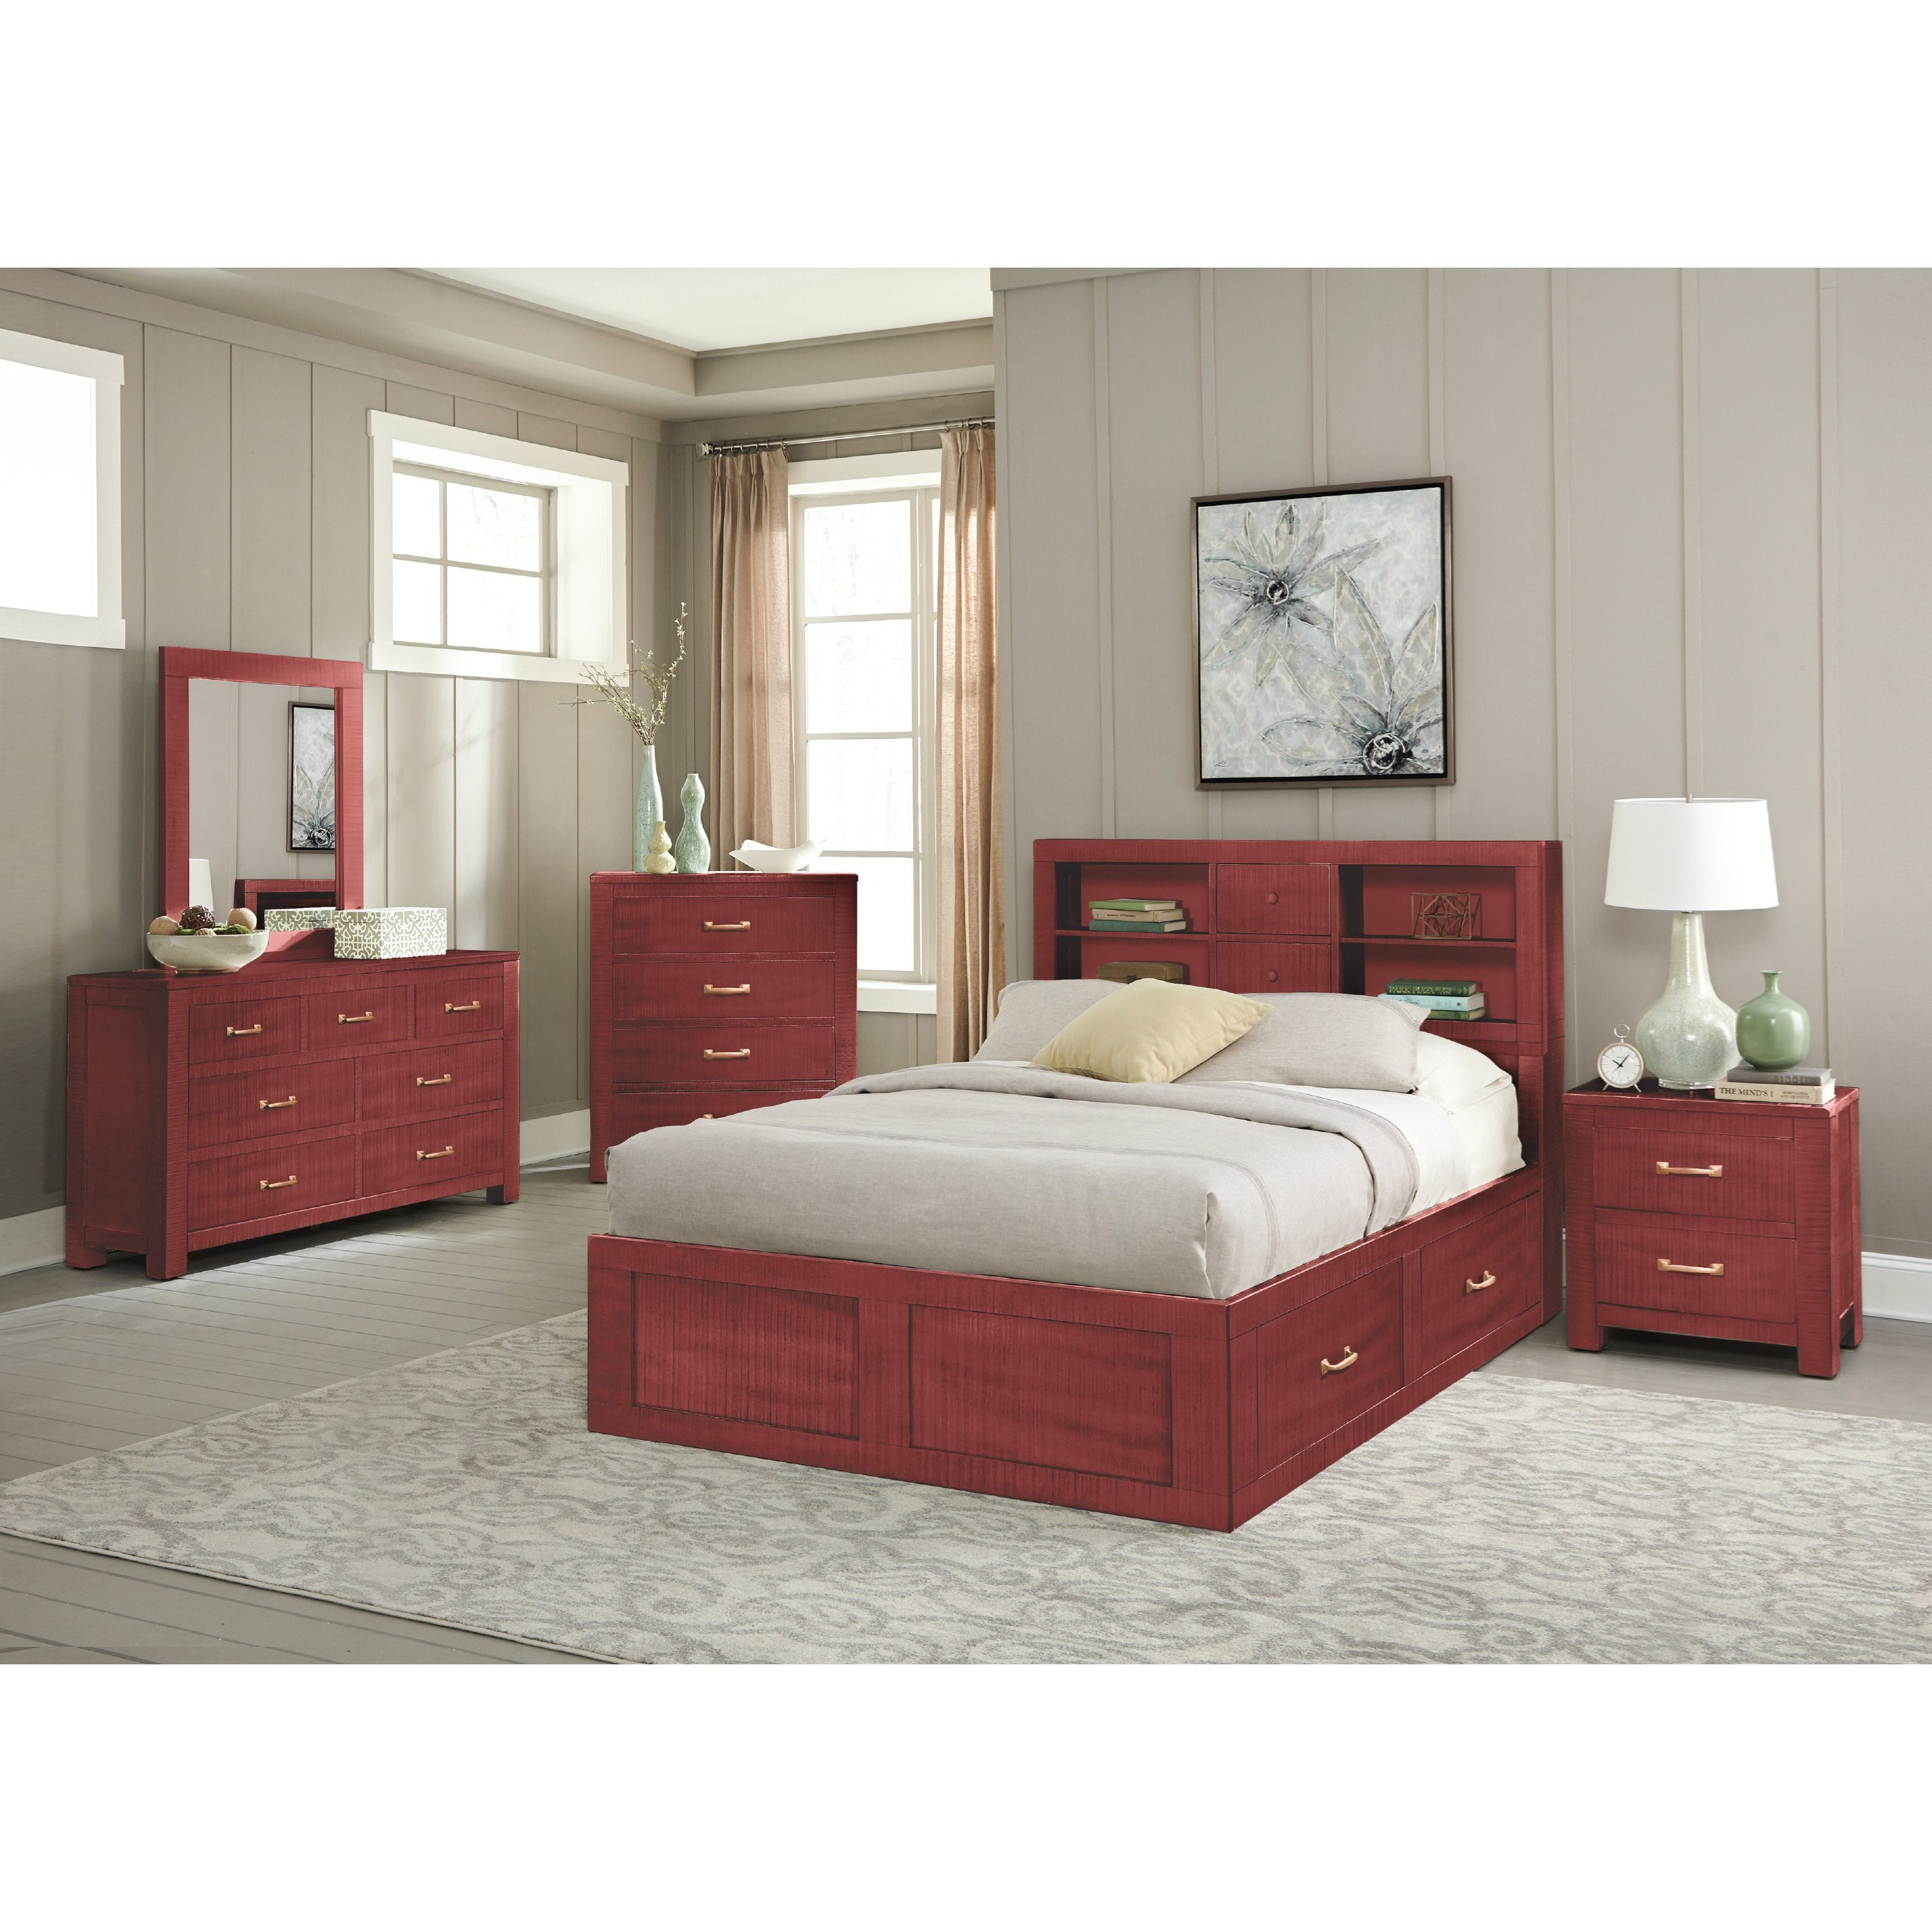 2319 Full Bedroom Group by Sunny Designs at Miller Home